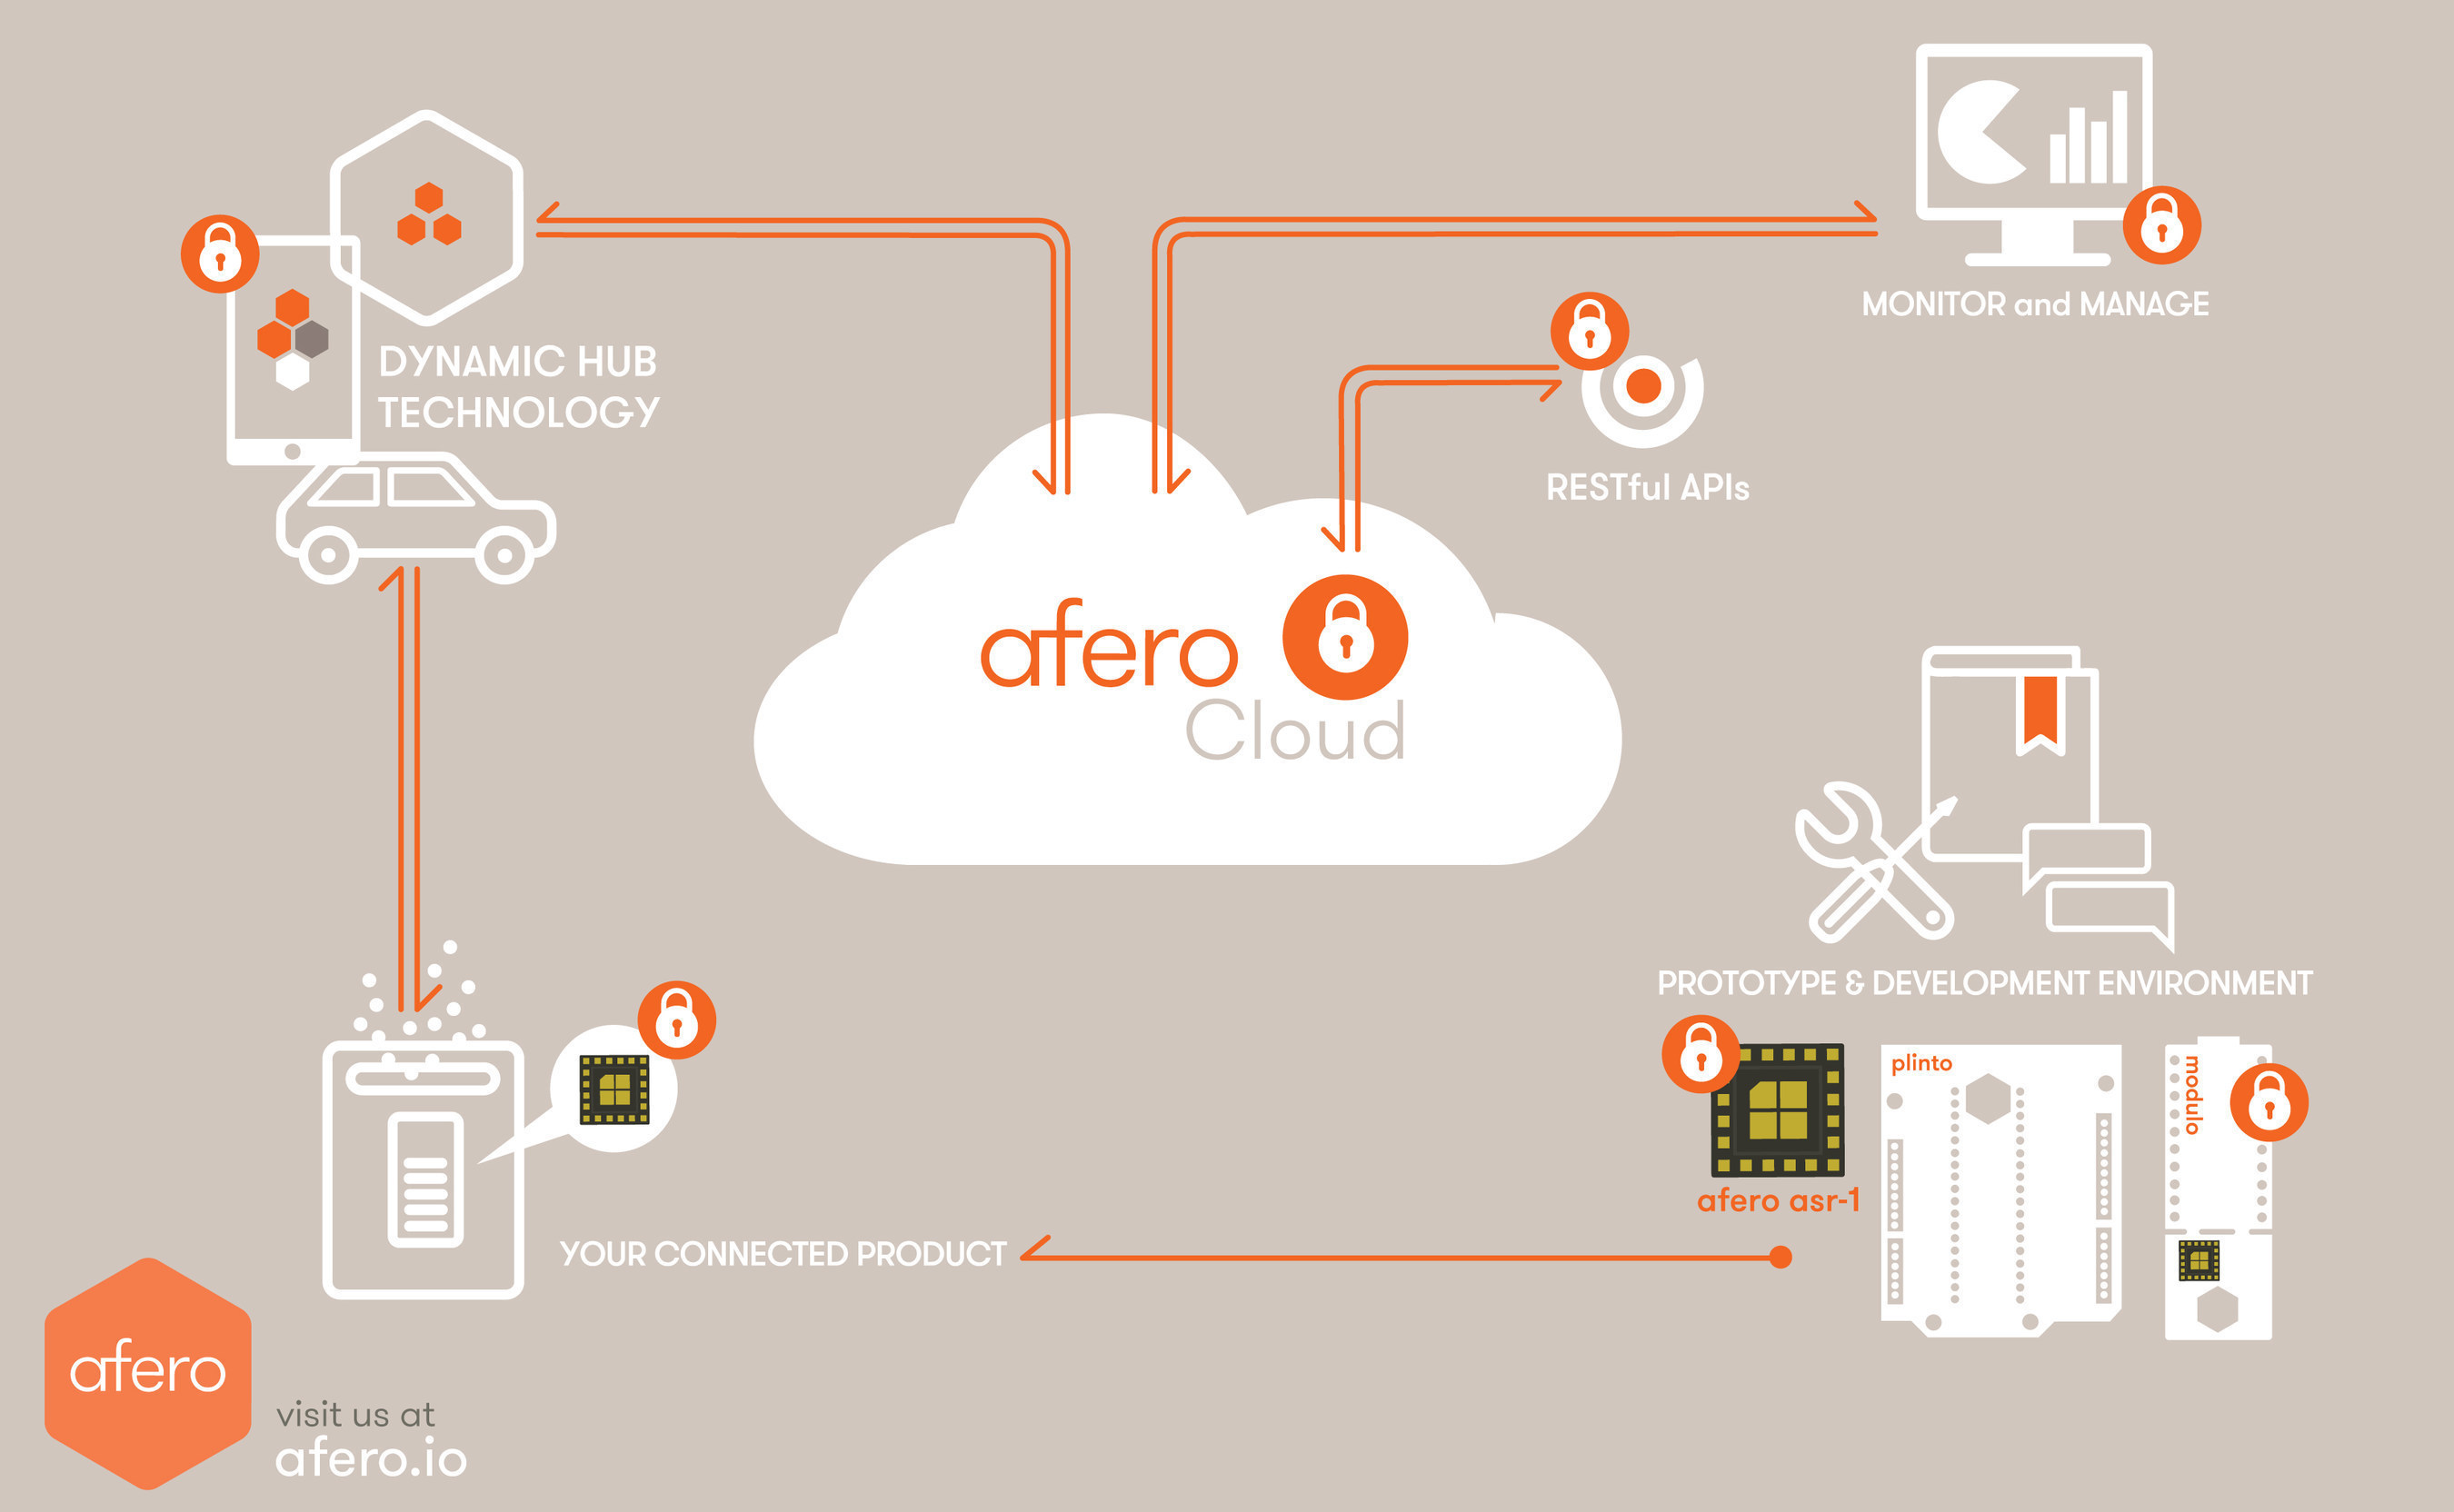 Afero, the platform that brings a higher level of connectivity and security to the Internet of Things, both inside and outside the home.